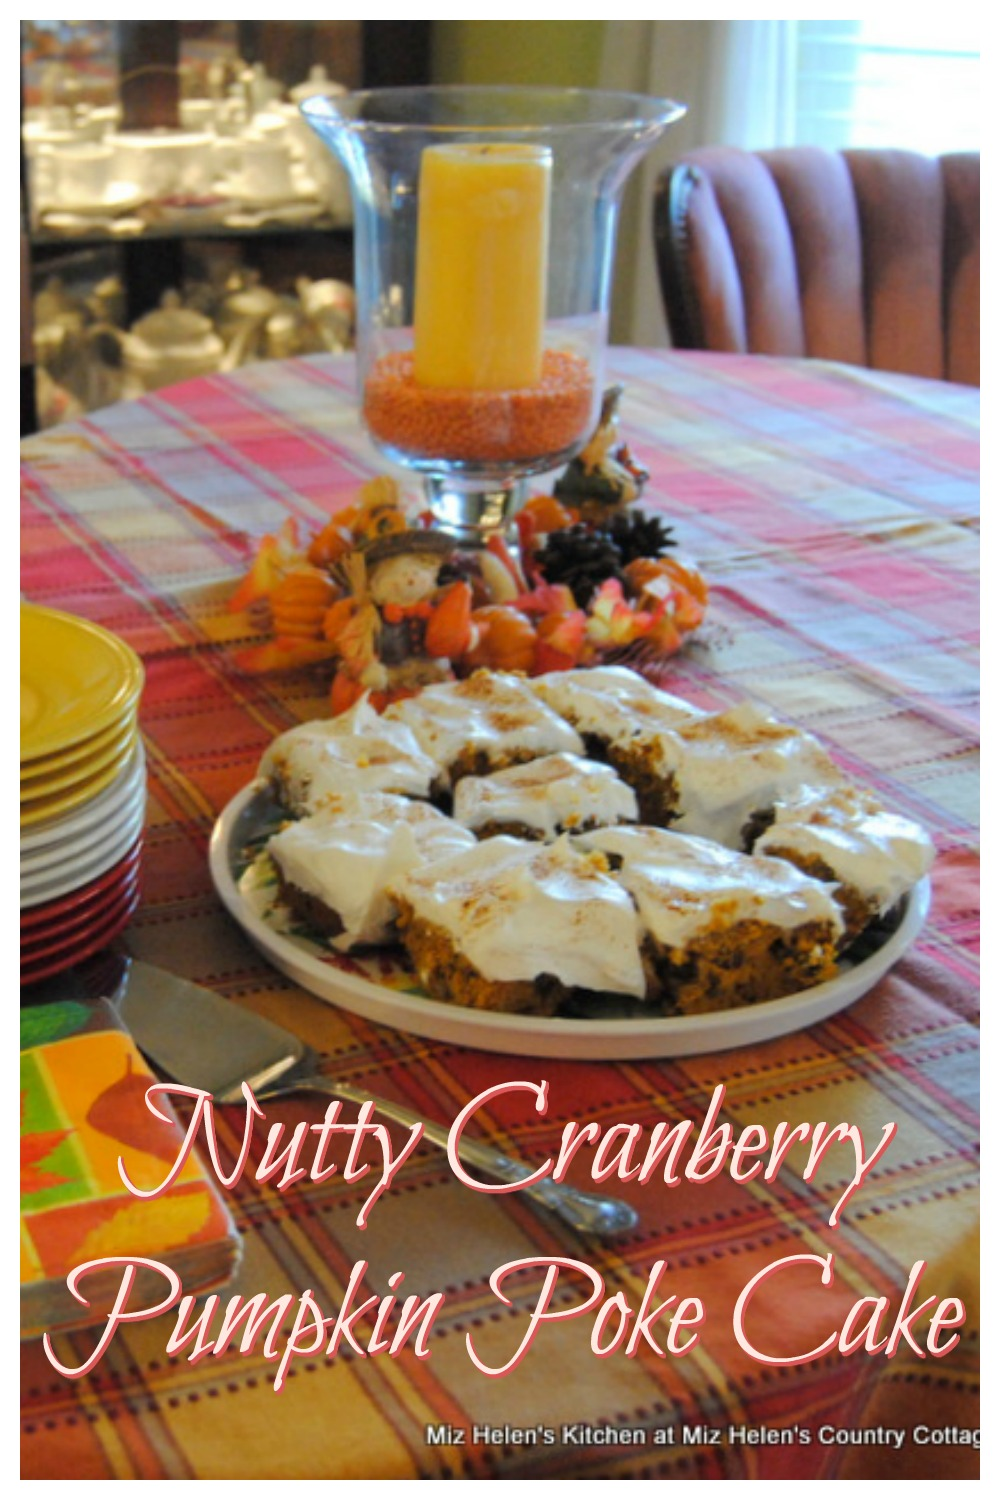 Nutty Cranberry Pumpkin Poke Cake